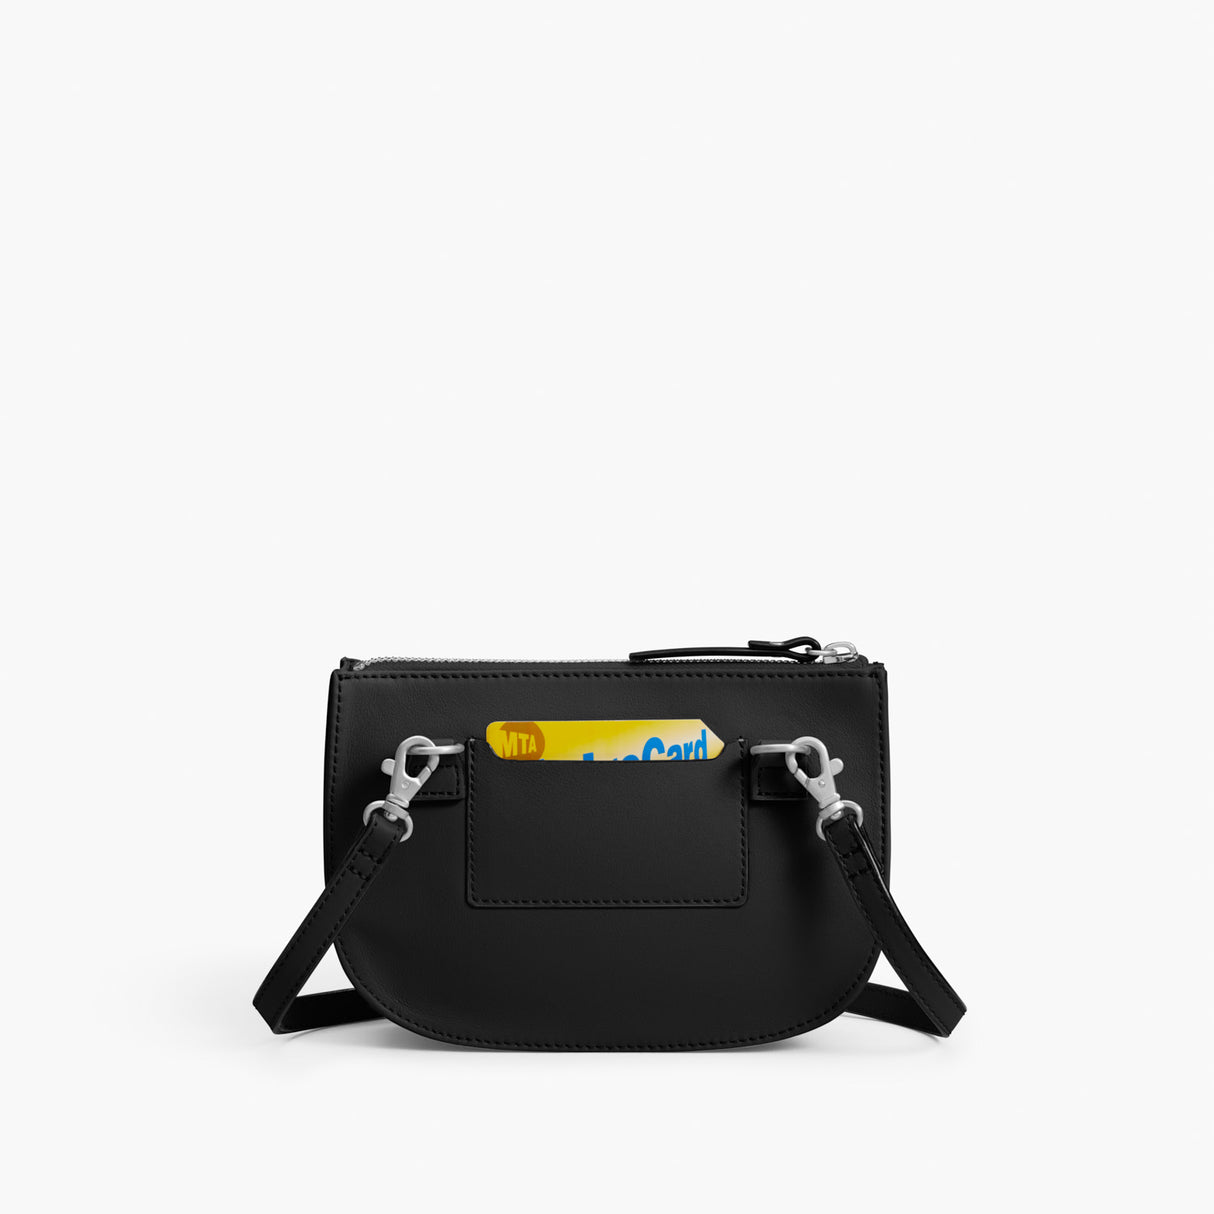 Back Card - Waverley 2 - Nappa Leather - Black / Silver / Grey - Crossbody Bag - Lo & Sons